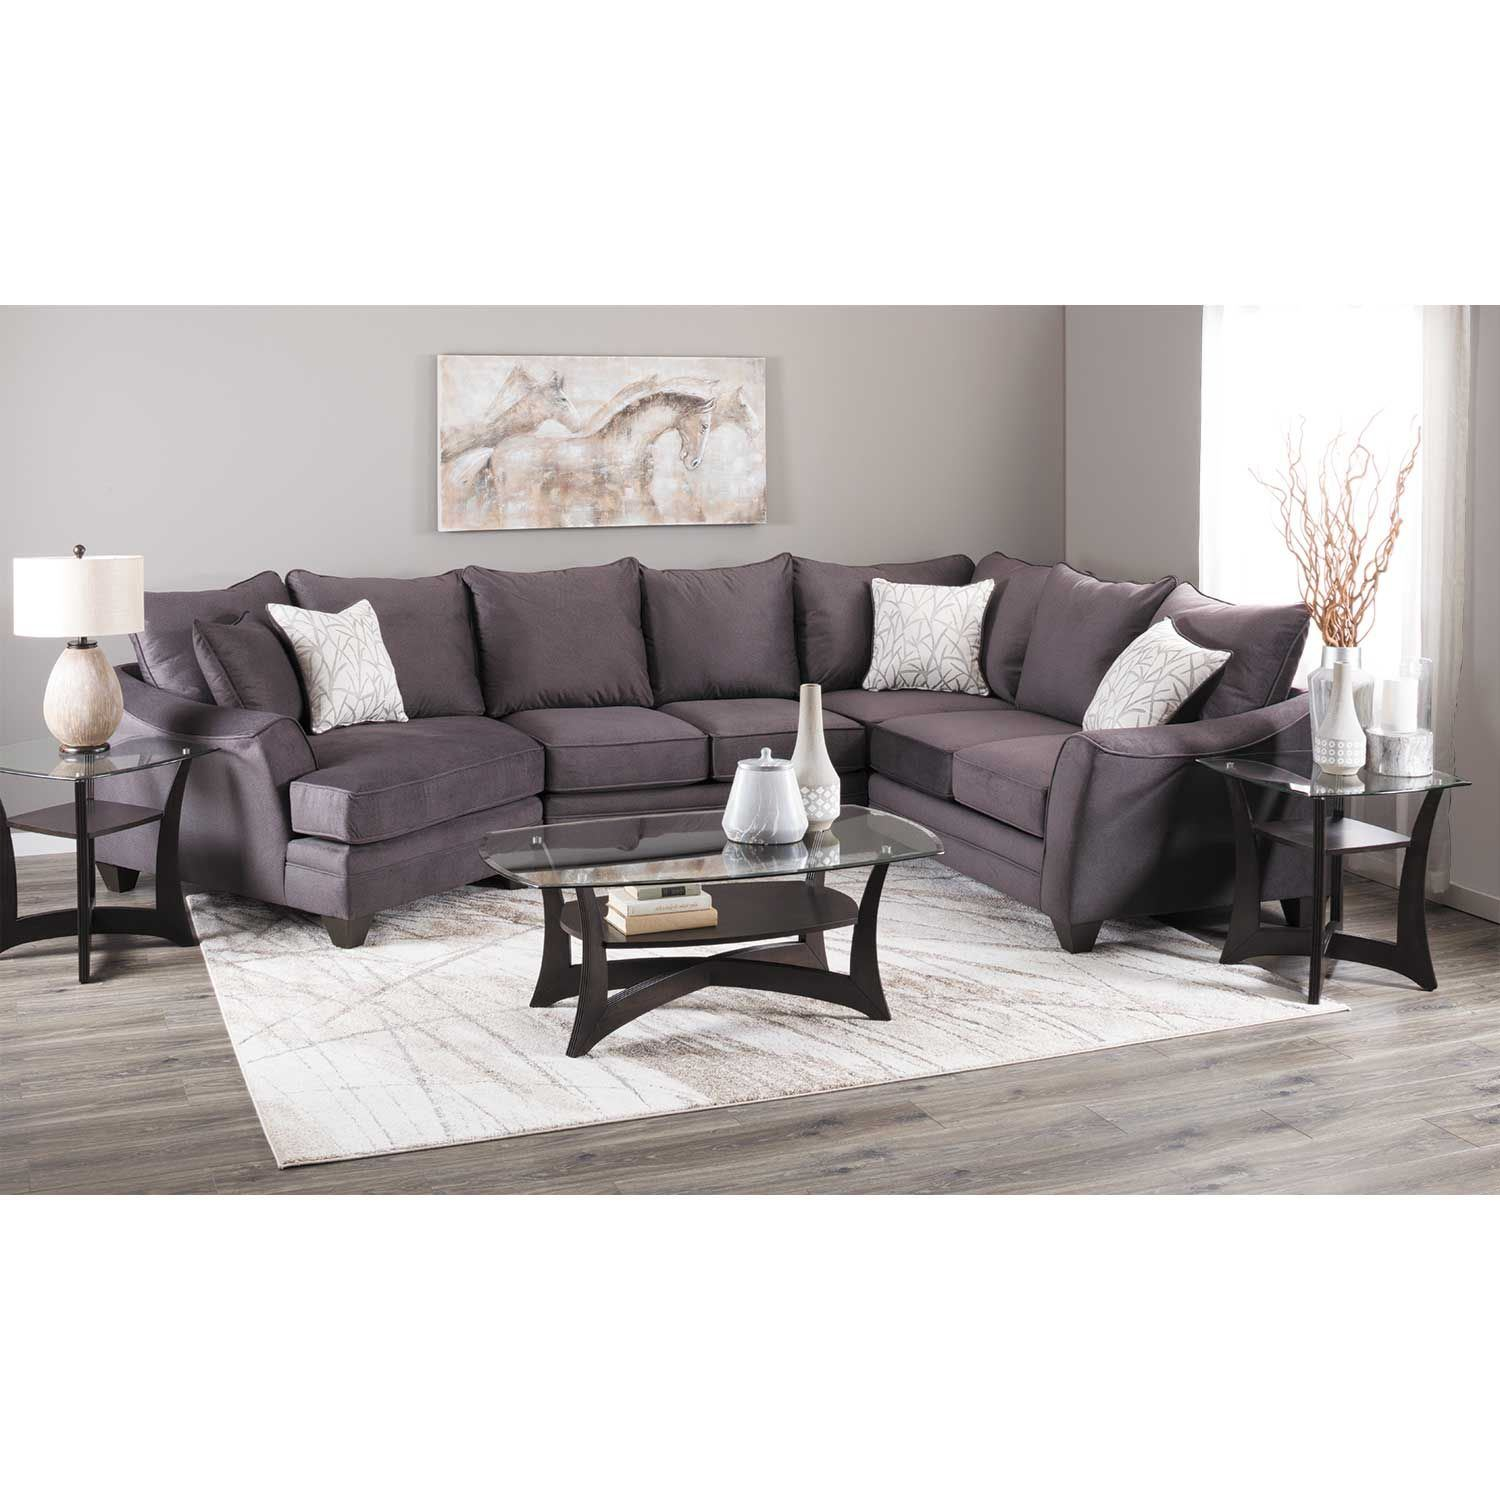 Picture of Flannel Seal 3 Piece Sectional with RAF Cuddler